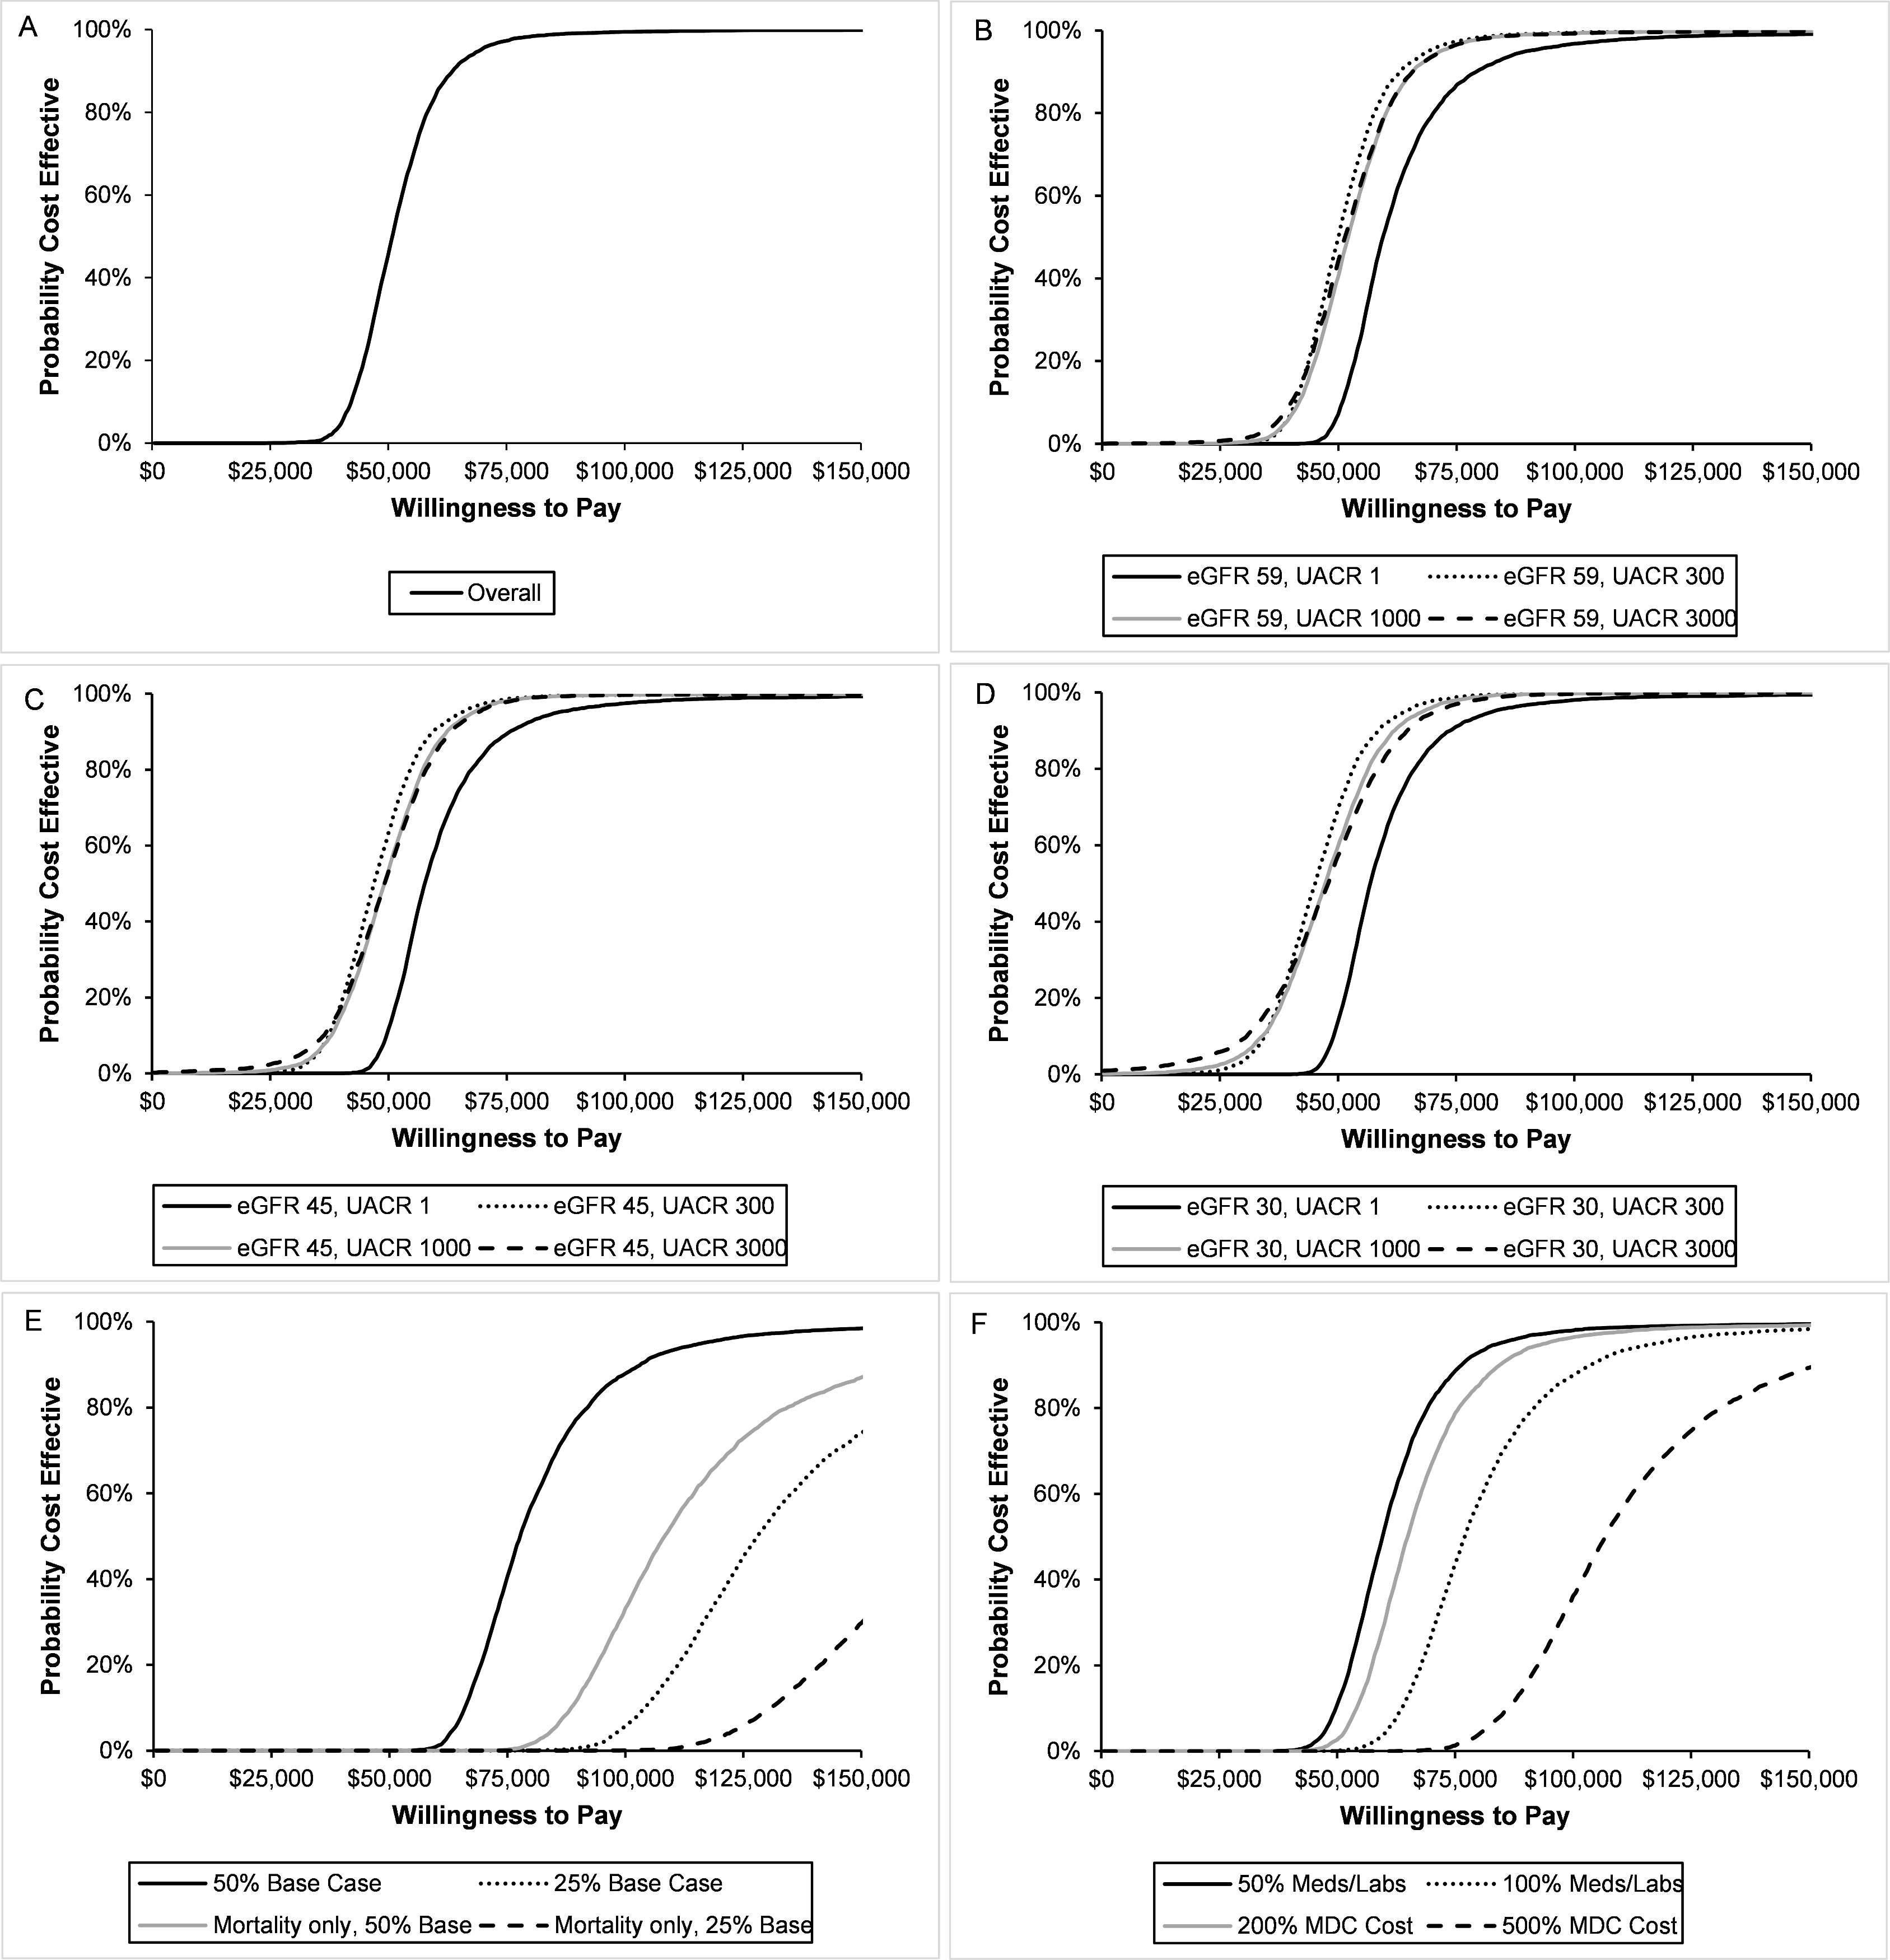 Cost-effectiveness acceptability curves for multidisciplinary care (MDC).